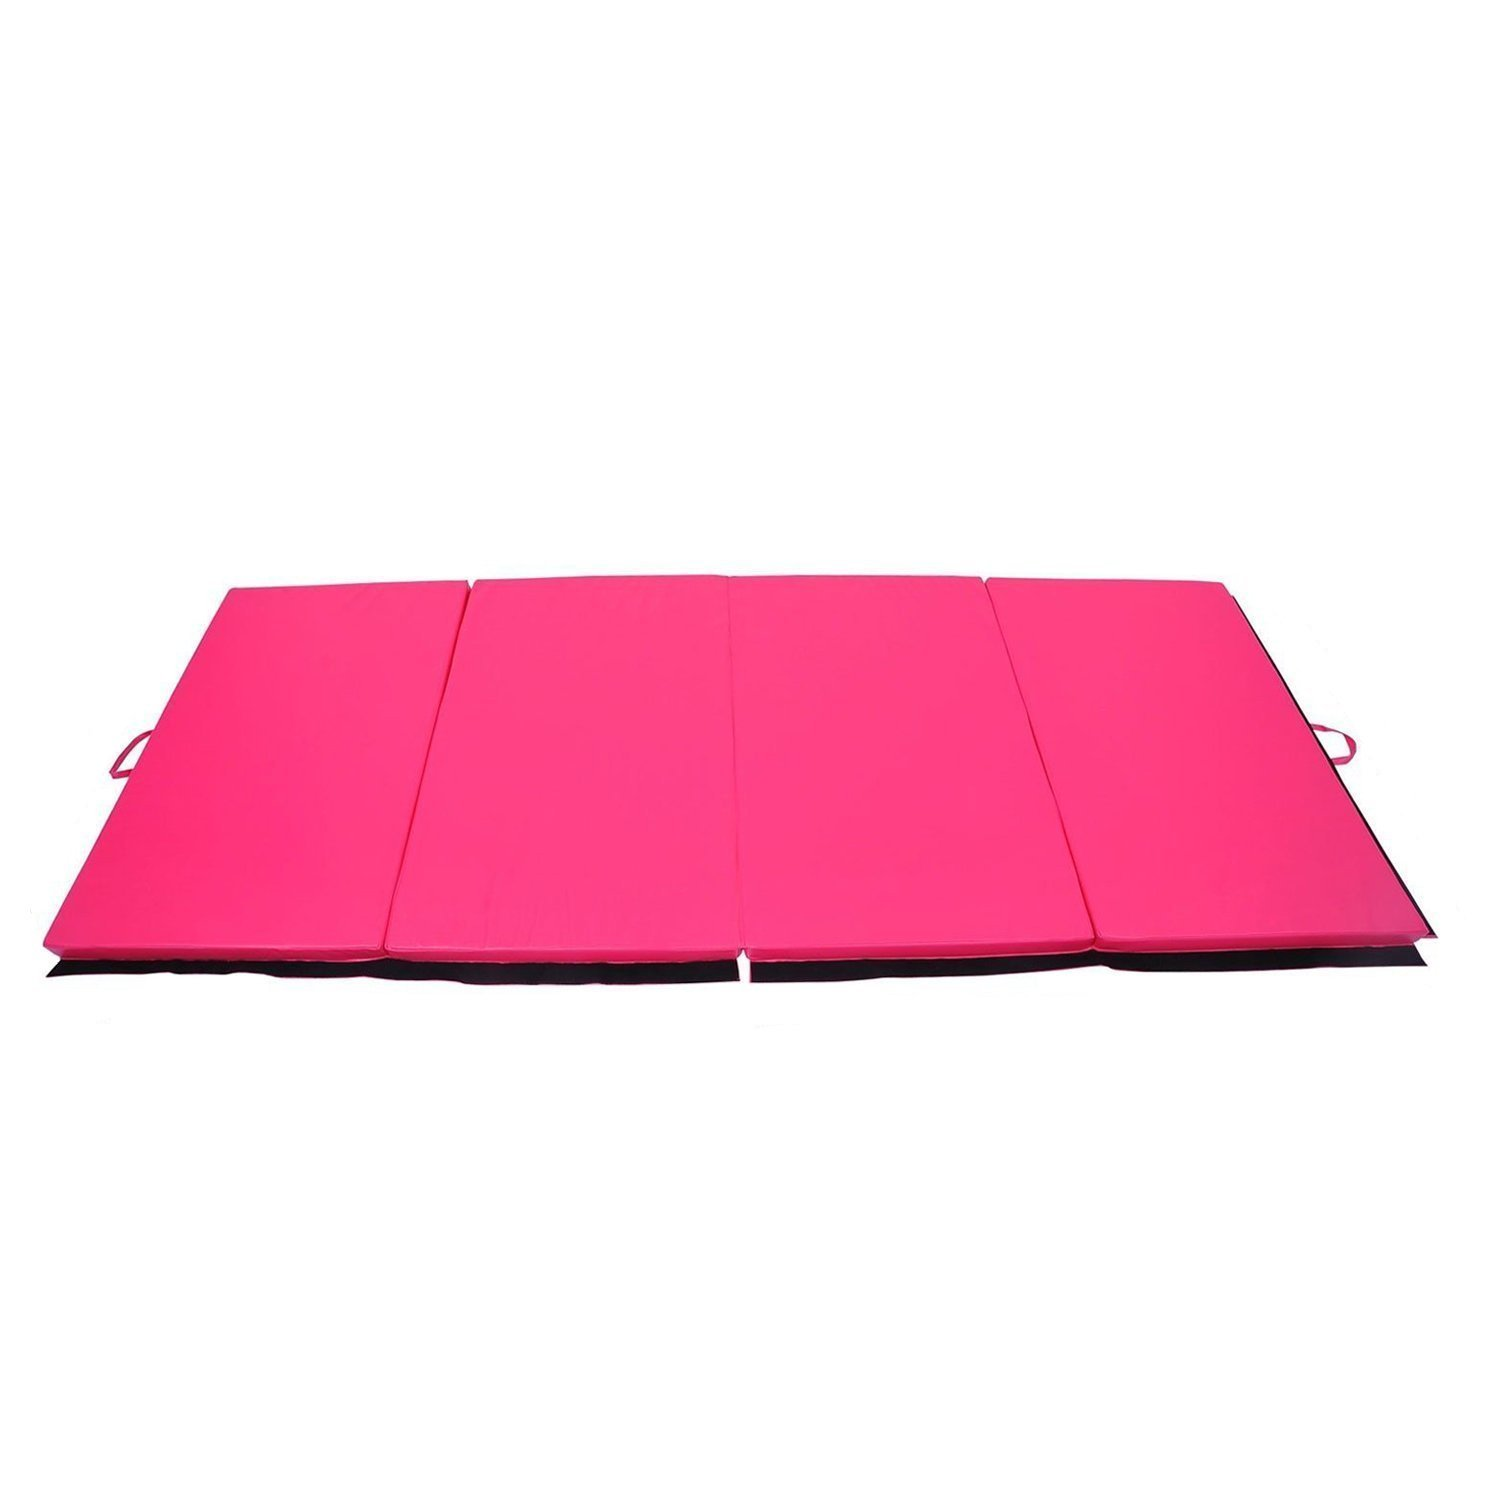 cancel diy products gym mat inflowcomponent s gymnastics exercise mats tri global ebay p best content choice fold res inflow